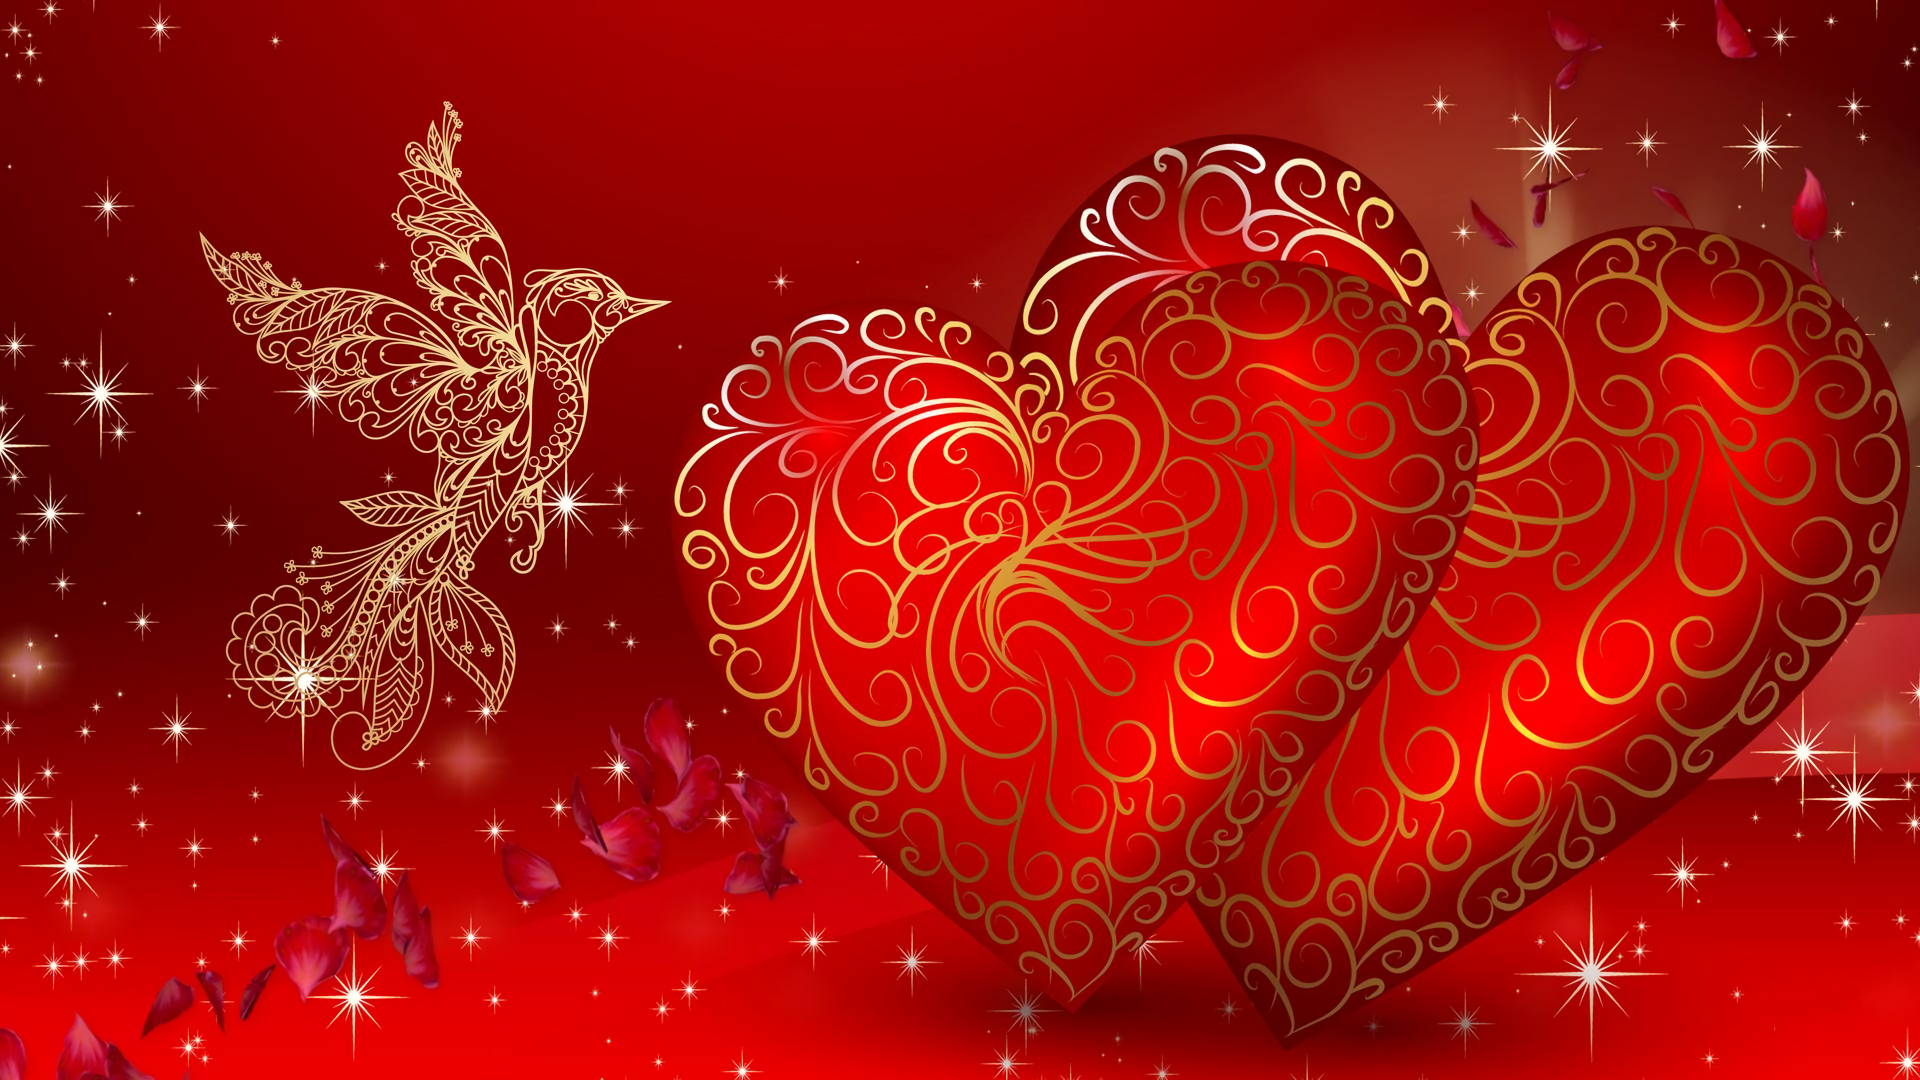 10 Top Cute Love Heart Wallpapers For Mobile Full Hd 1920: Valentine With Gold Dove HD Wallpaper